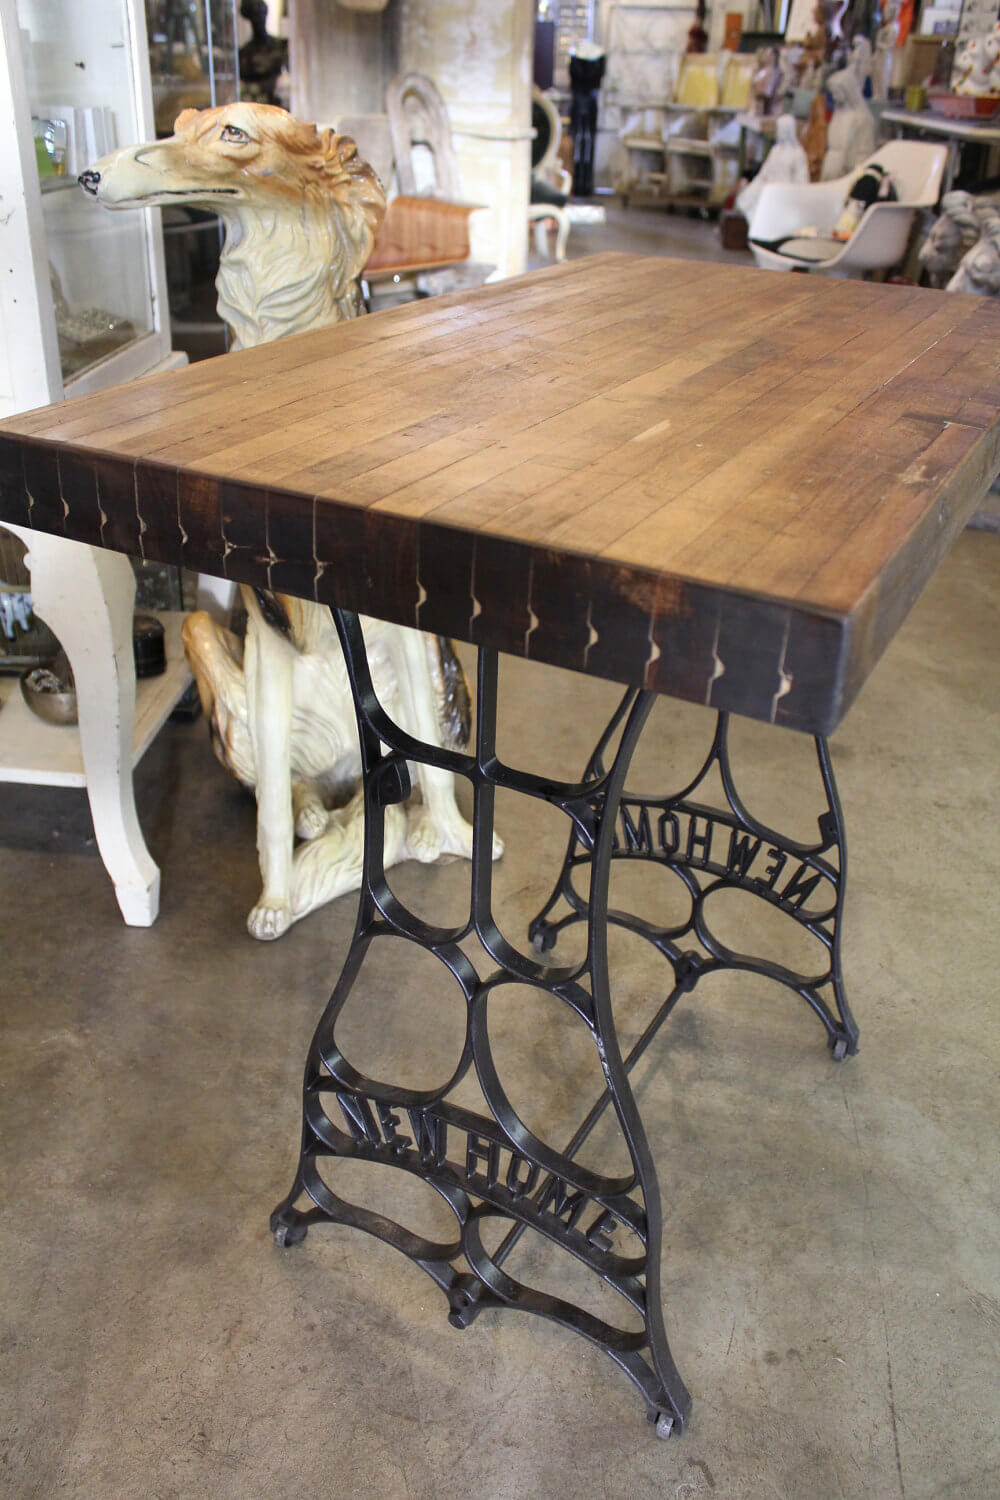 Old Sewing Machines' New Life in Your Interior. Nice design of the wooden riveted tabletop